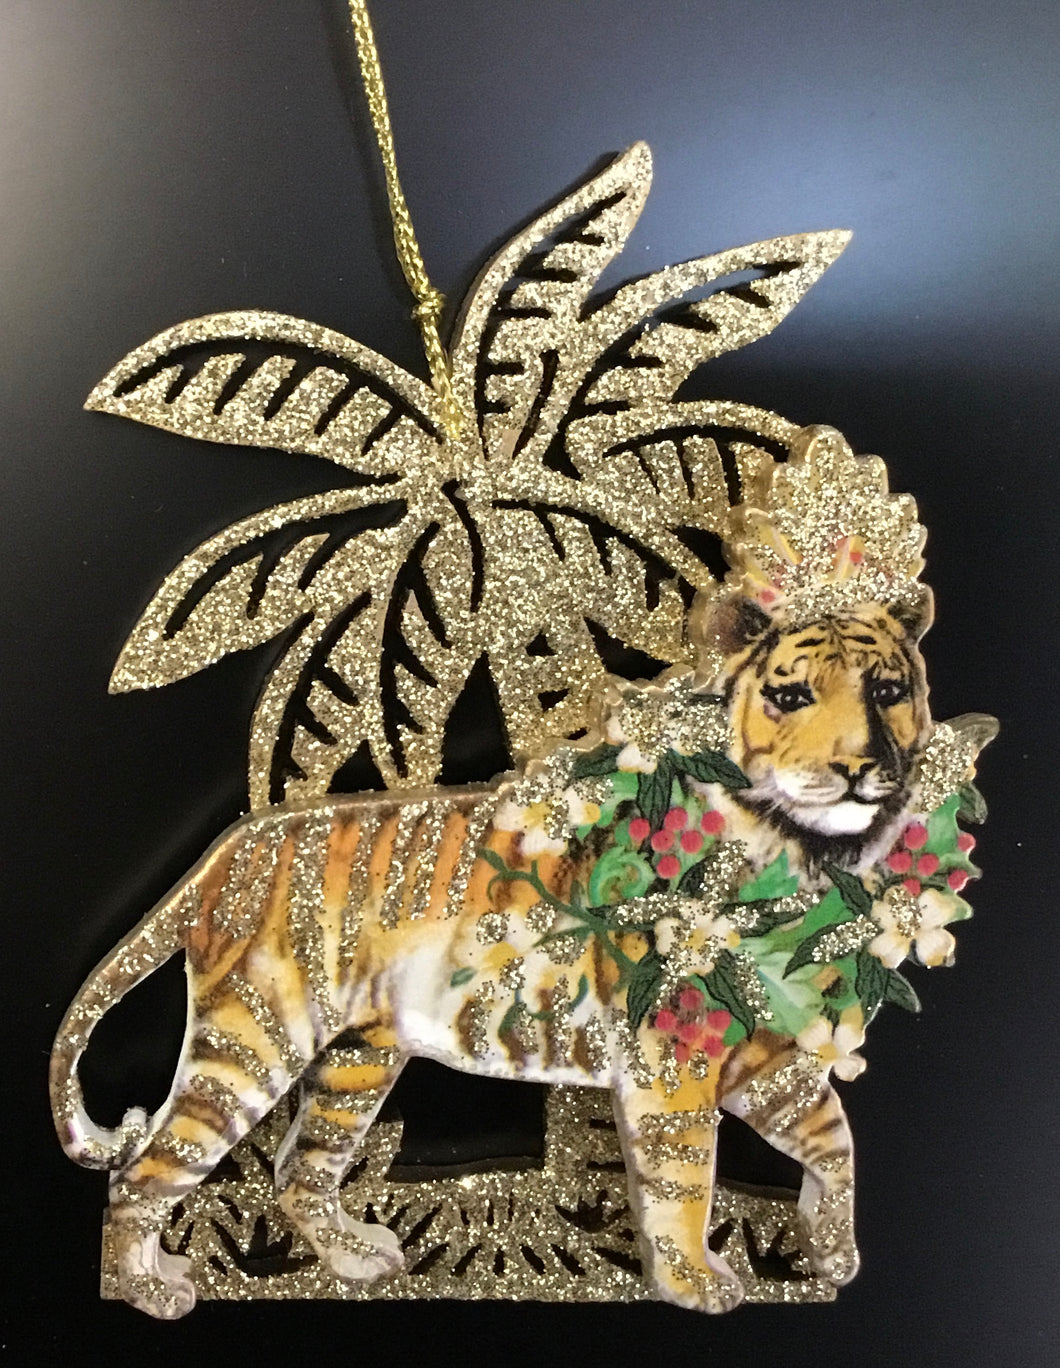 Wood tiger with Glitter Palm Tree